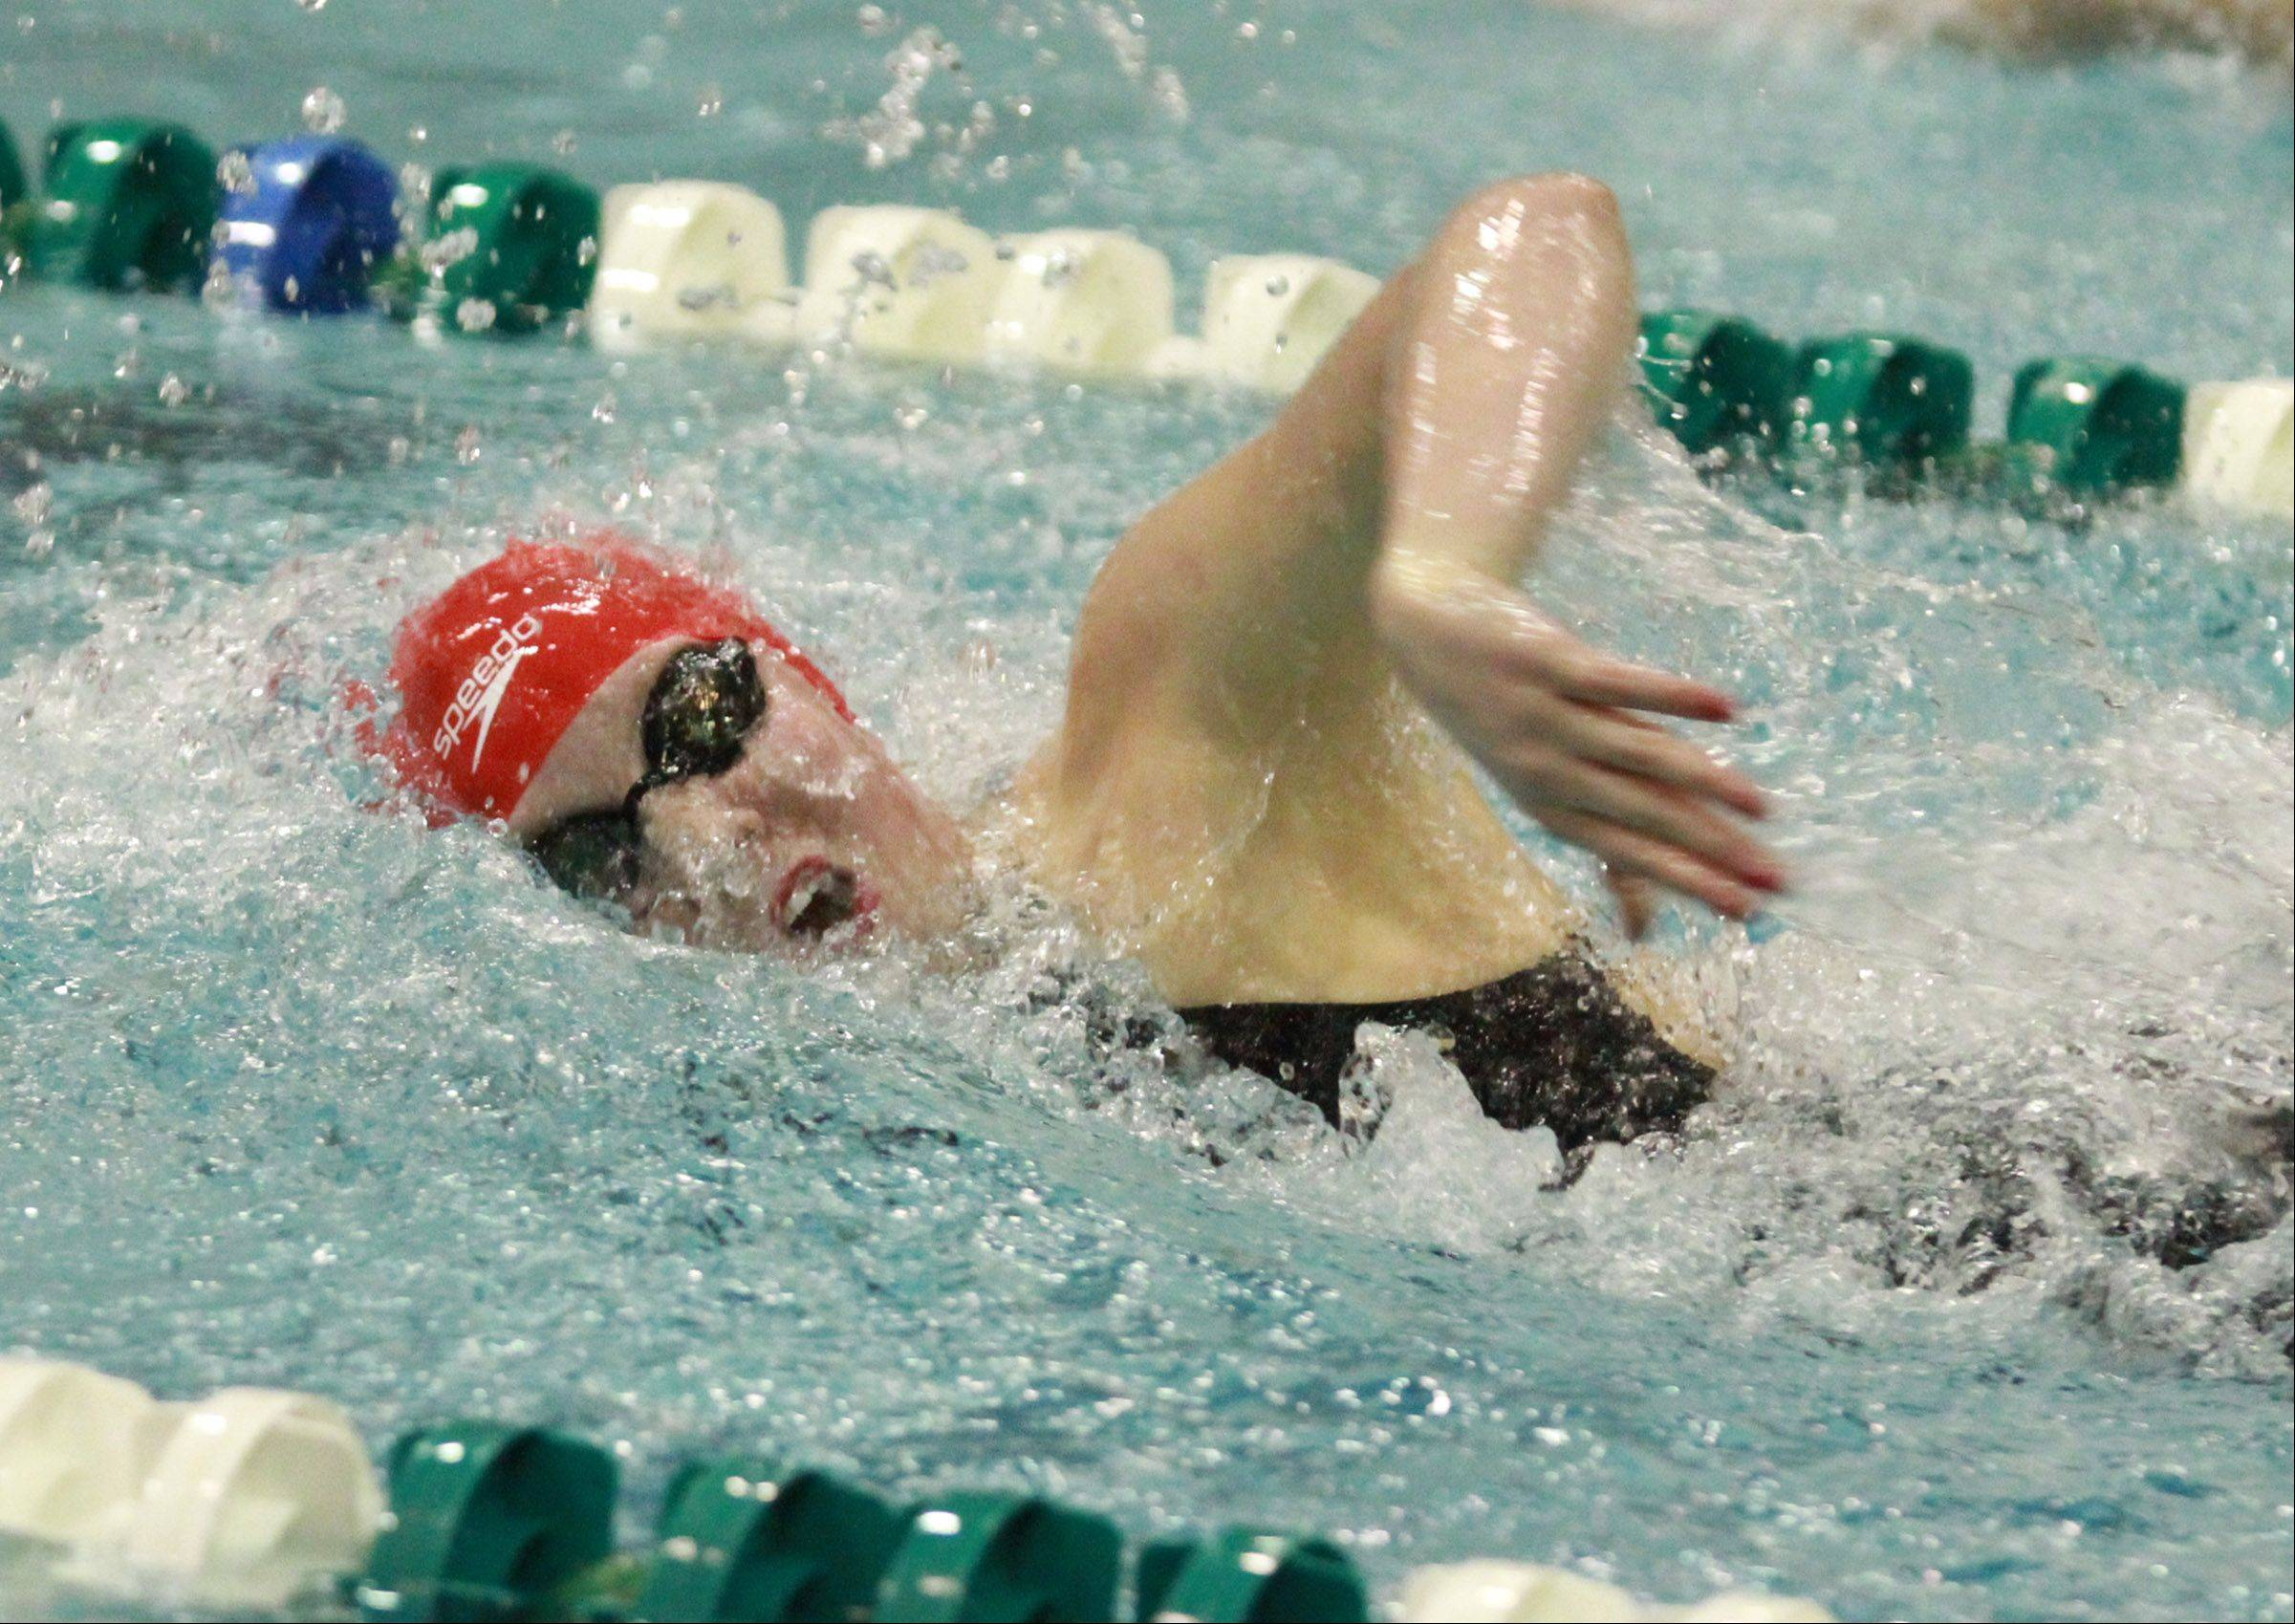 Mundelein's Erin Falconer placed second in the 200-yard freestyle at the girls swimming state finals on Saturday at New Trier.